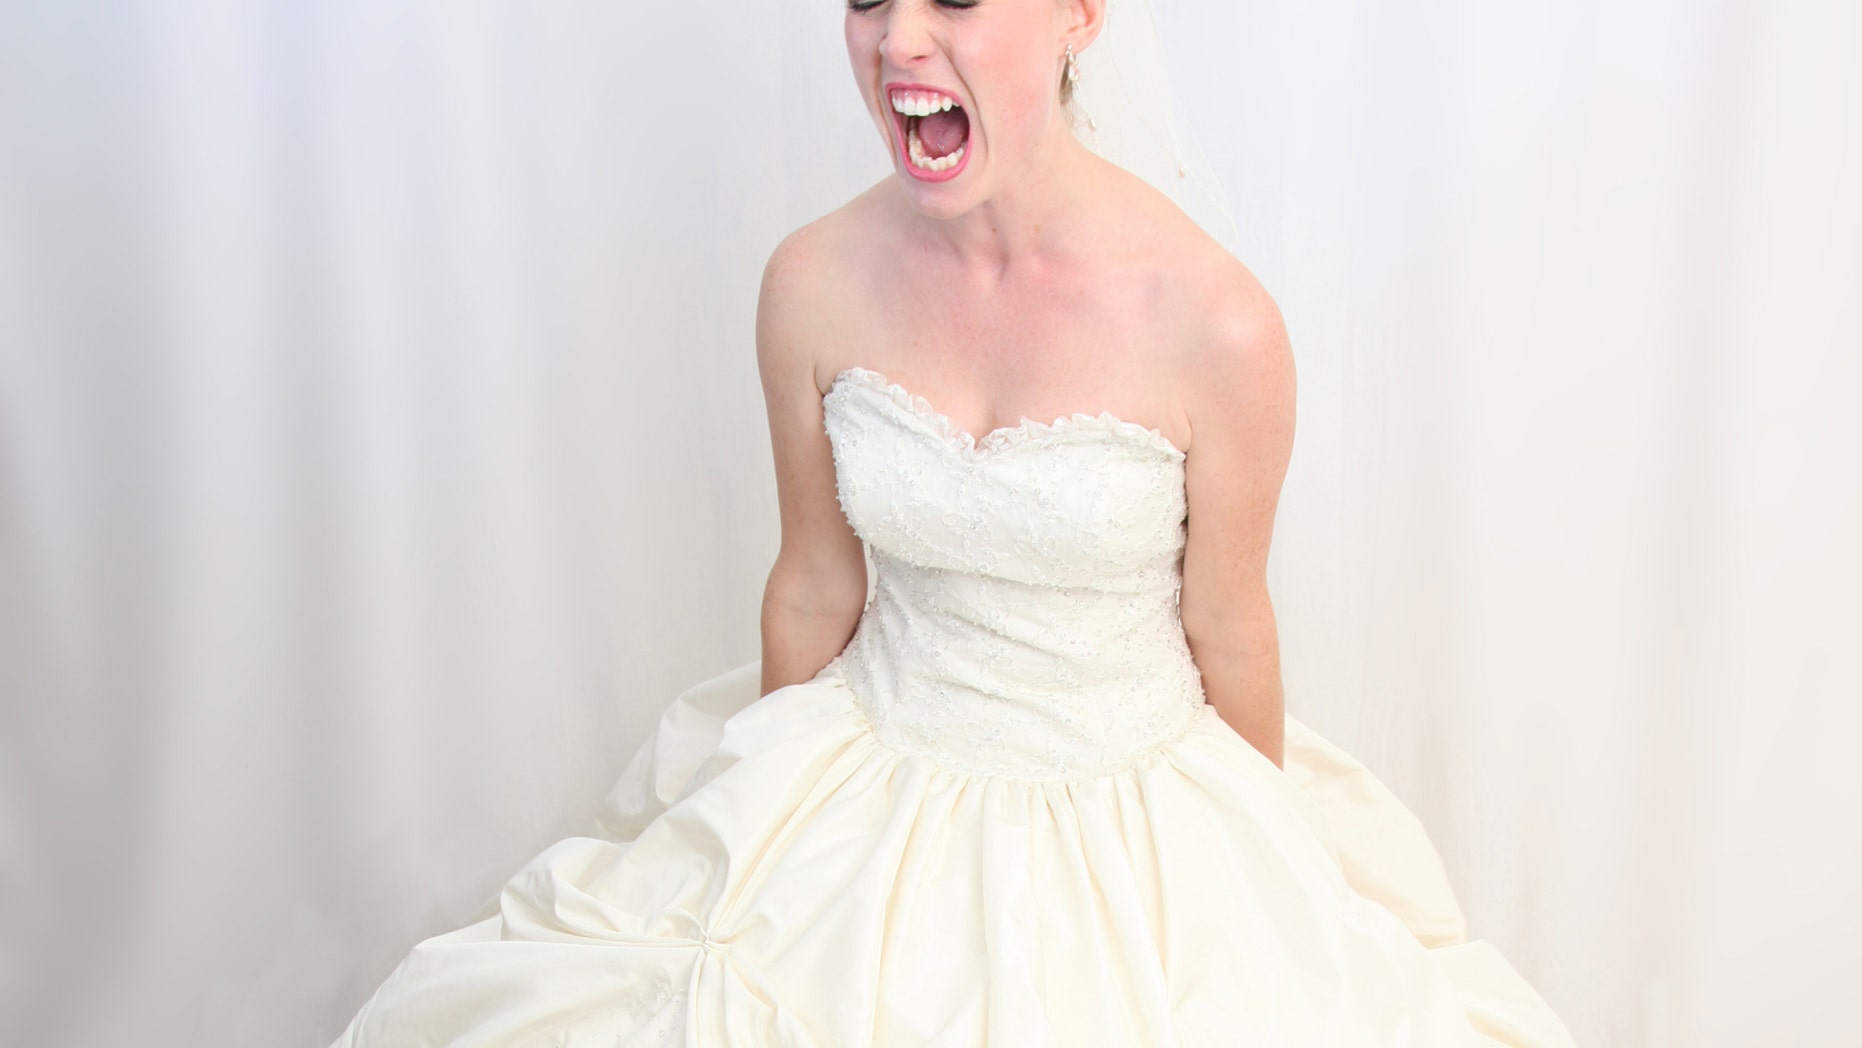 When the bride saw her husband dancing with his mother-in-law during the ceremony, she ran out and was seen crying, ranting and raving. (iStock)